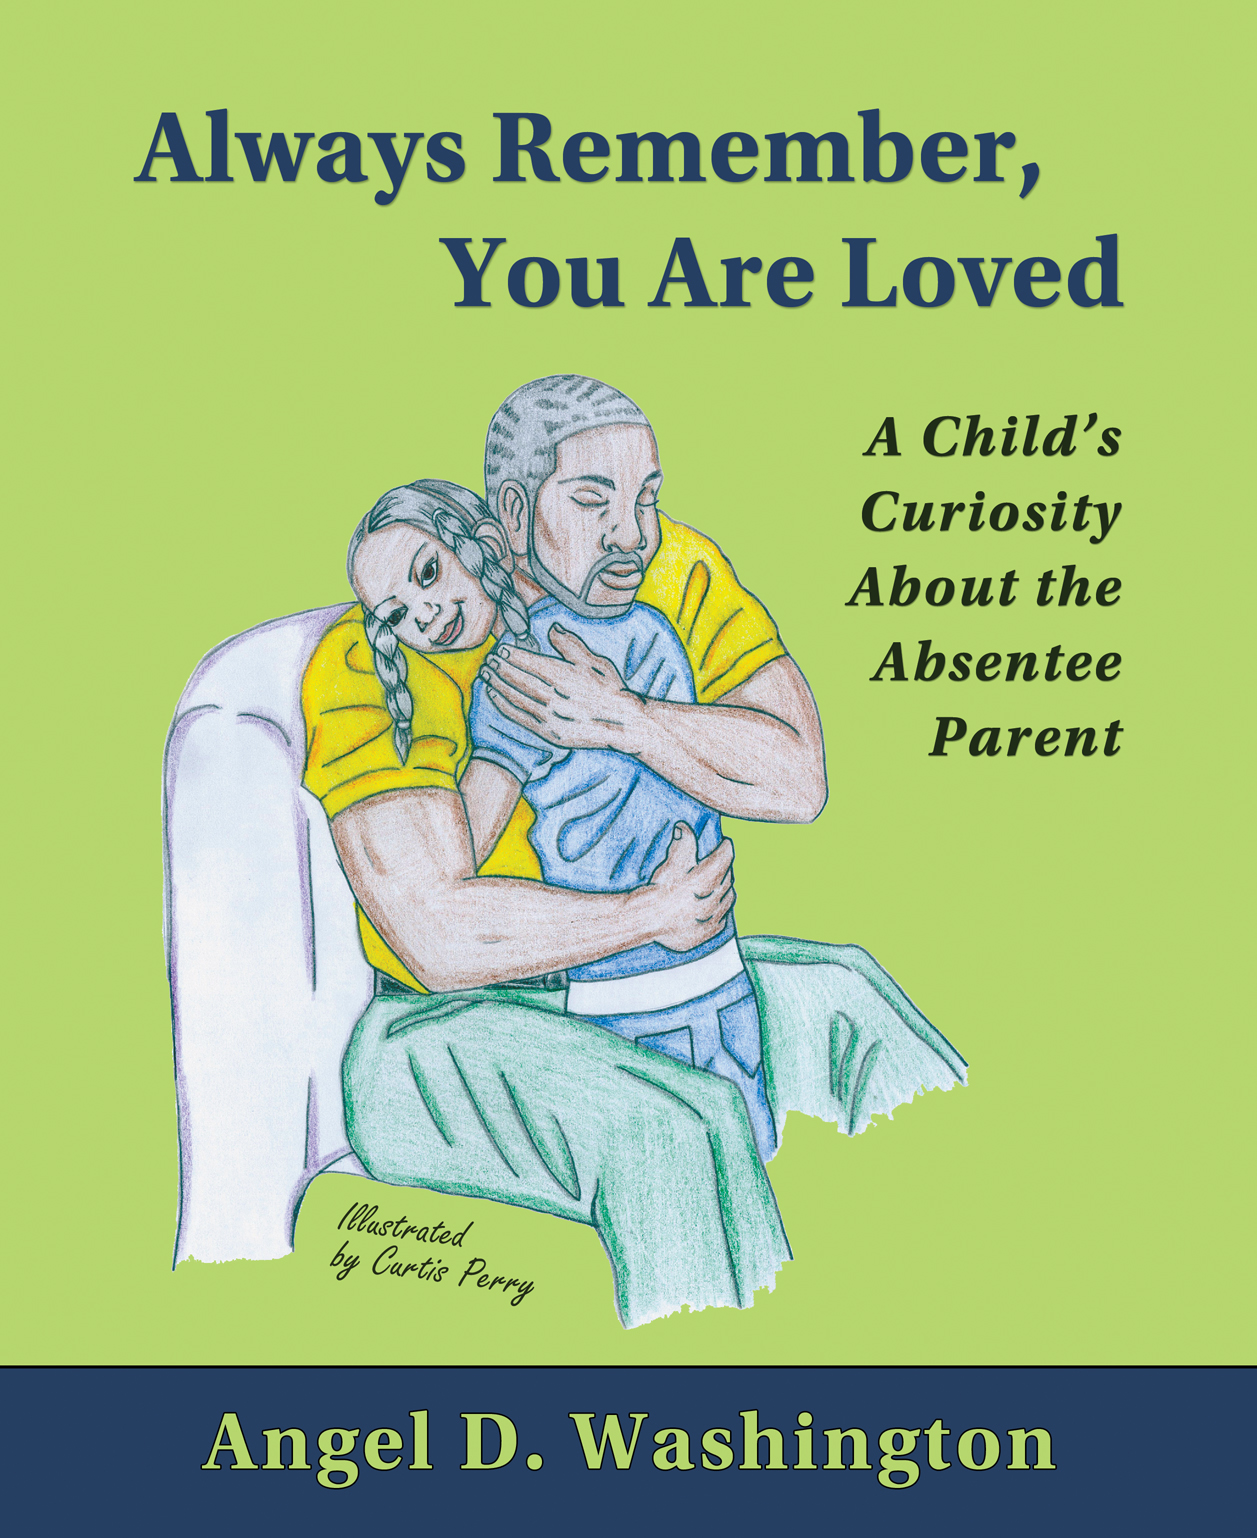 Always Remember You Are Loved: Sister Scribbler: Author Spotlight